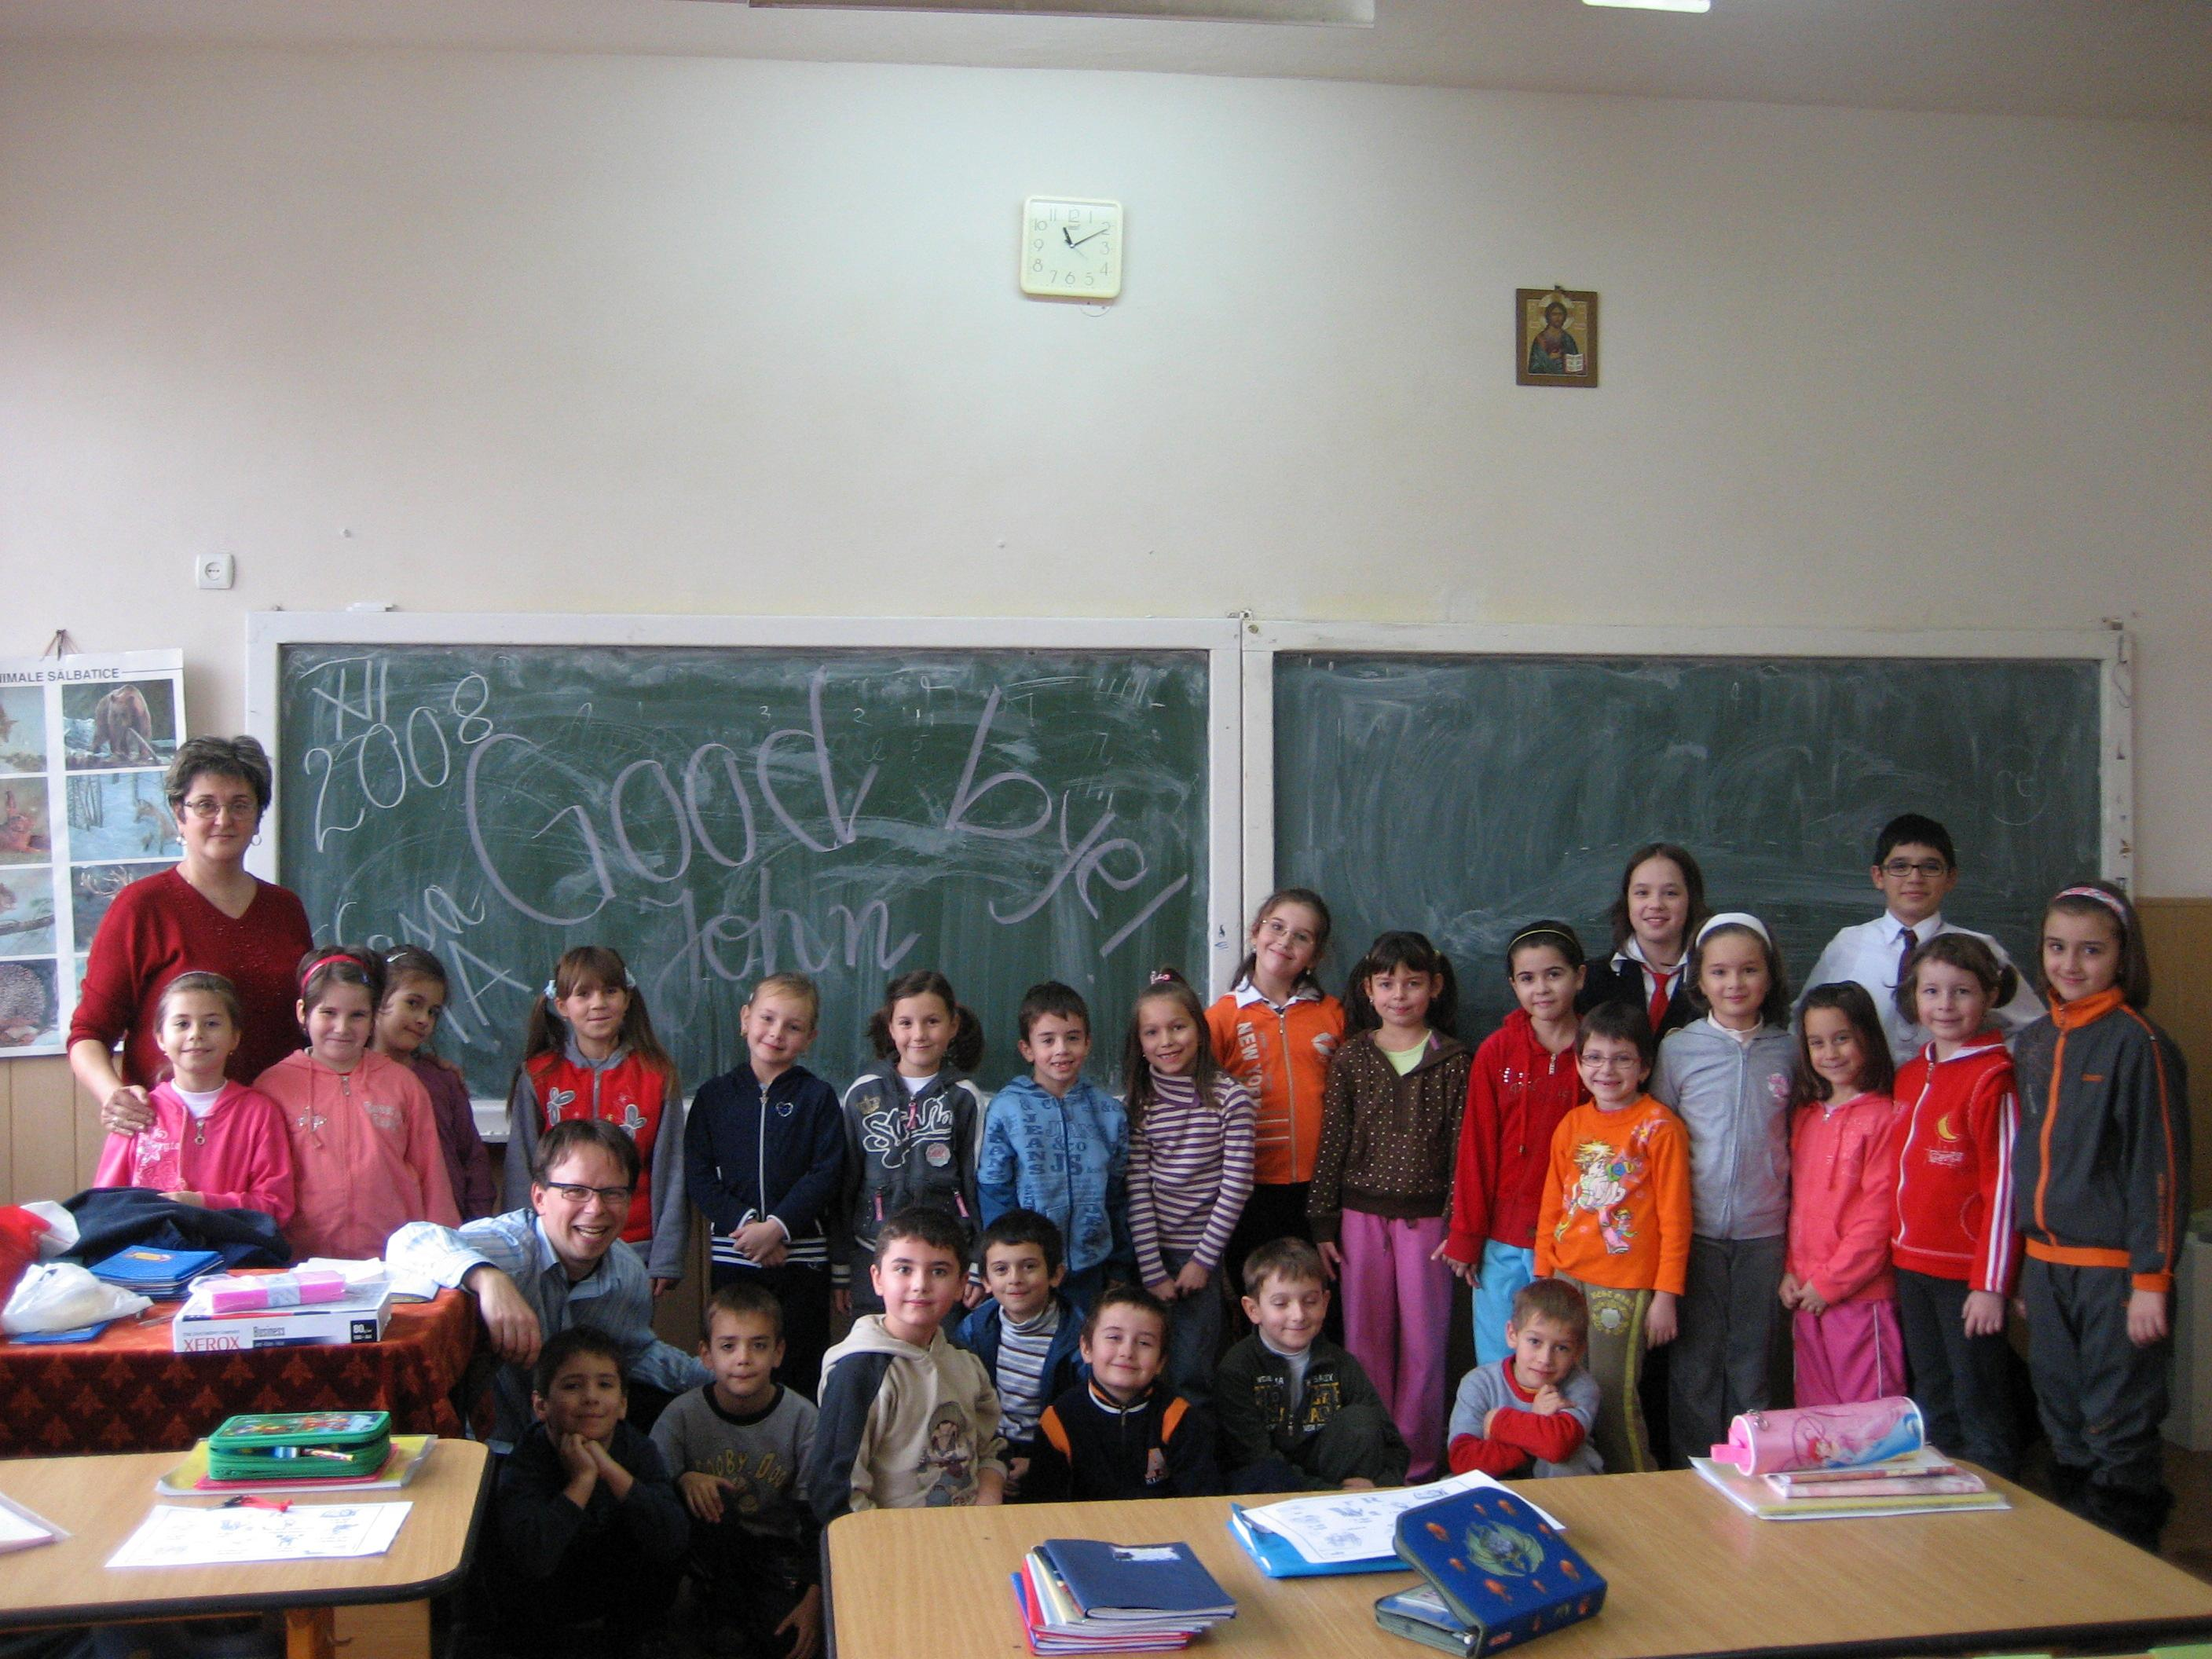 Projects Abroad volunteer and her students pose for a photo to mark the end of her teaching work experience in Romania